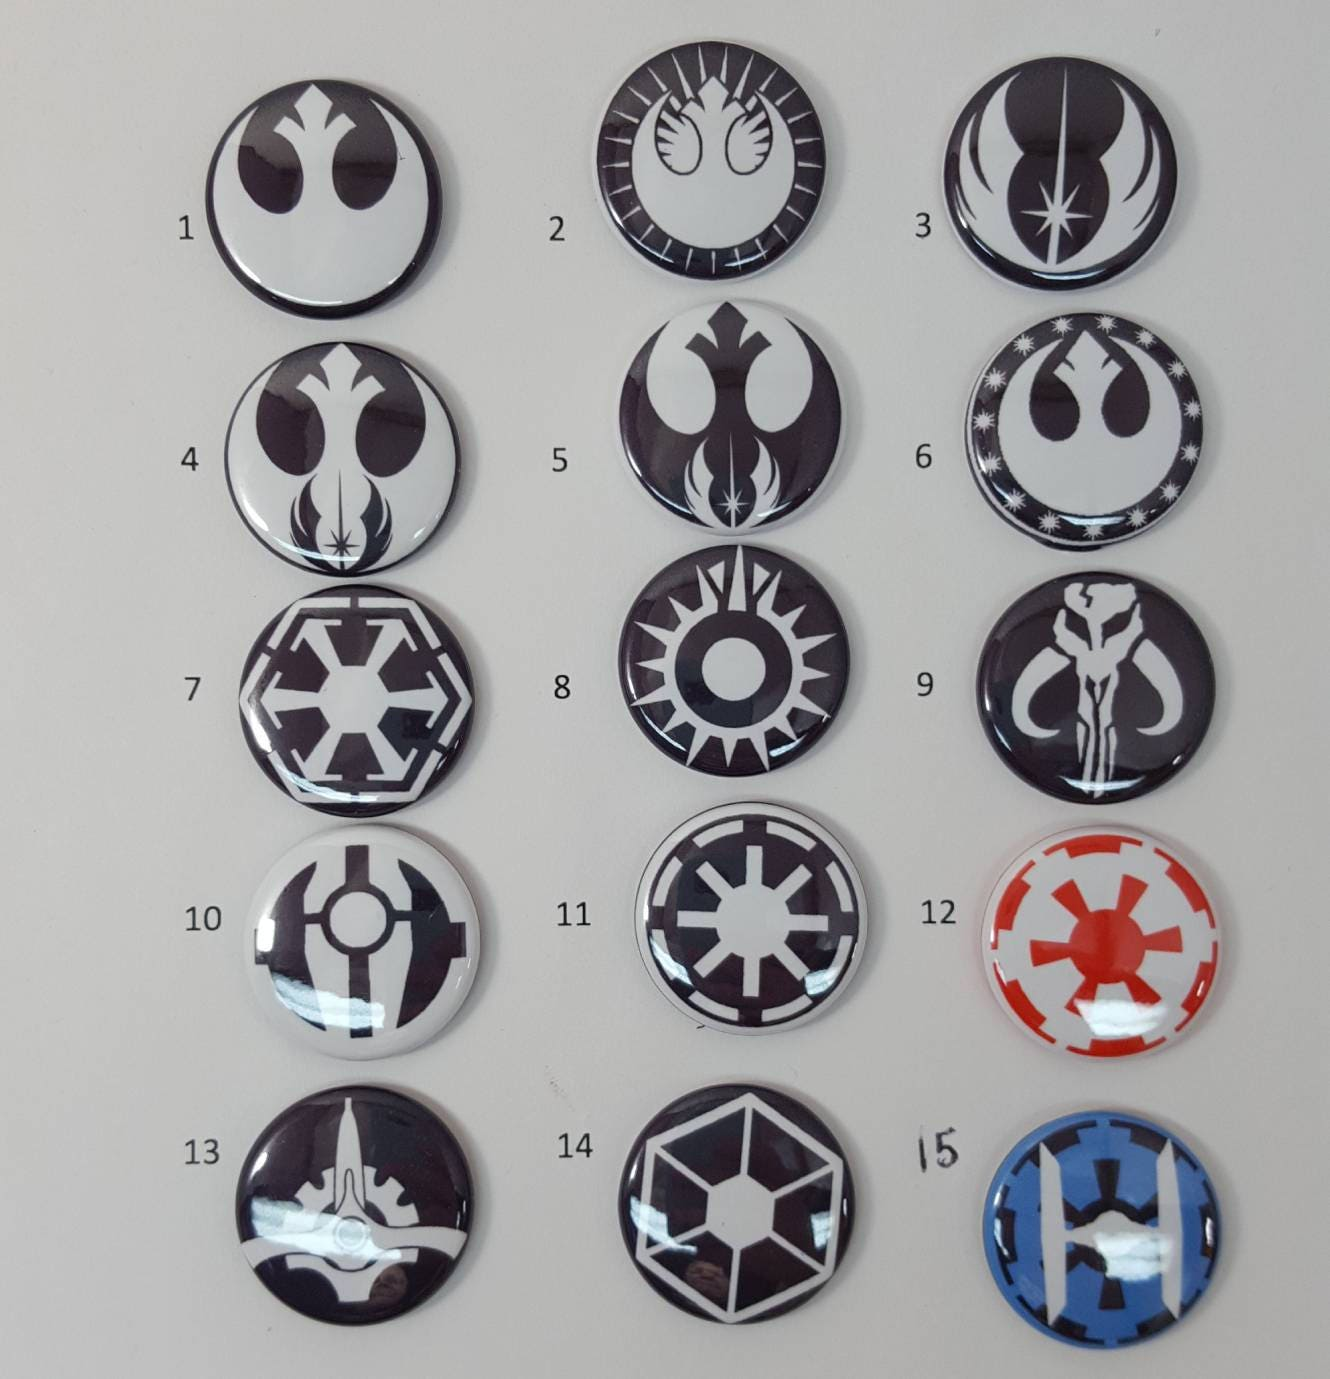 Star wars pins magnets or flatbacks hairbow diy rebel alliance 050 buycottarizona Choice Image